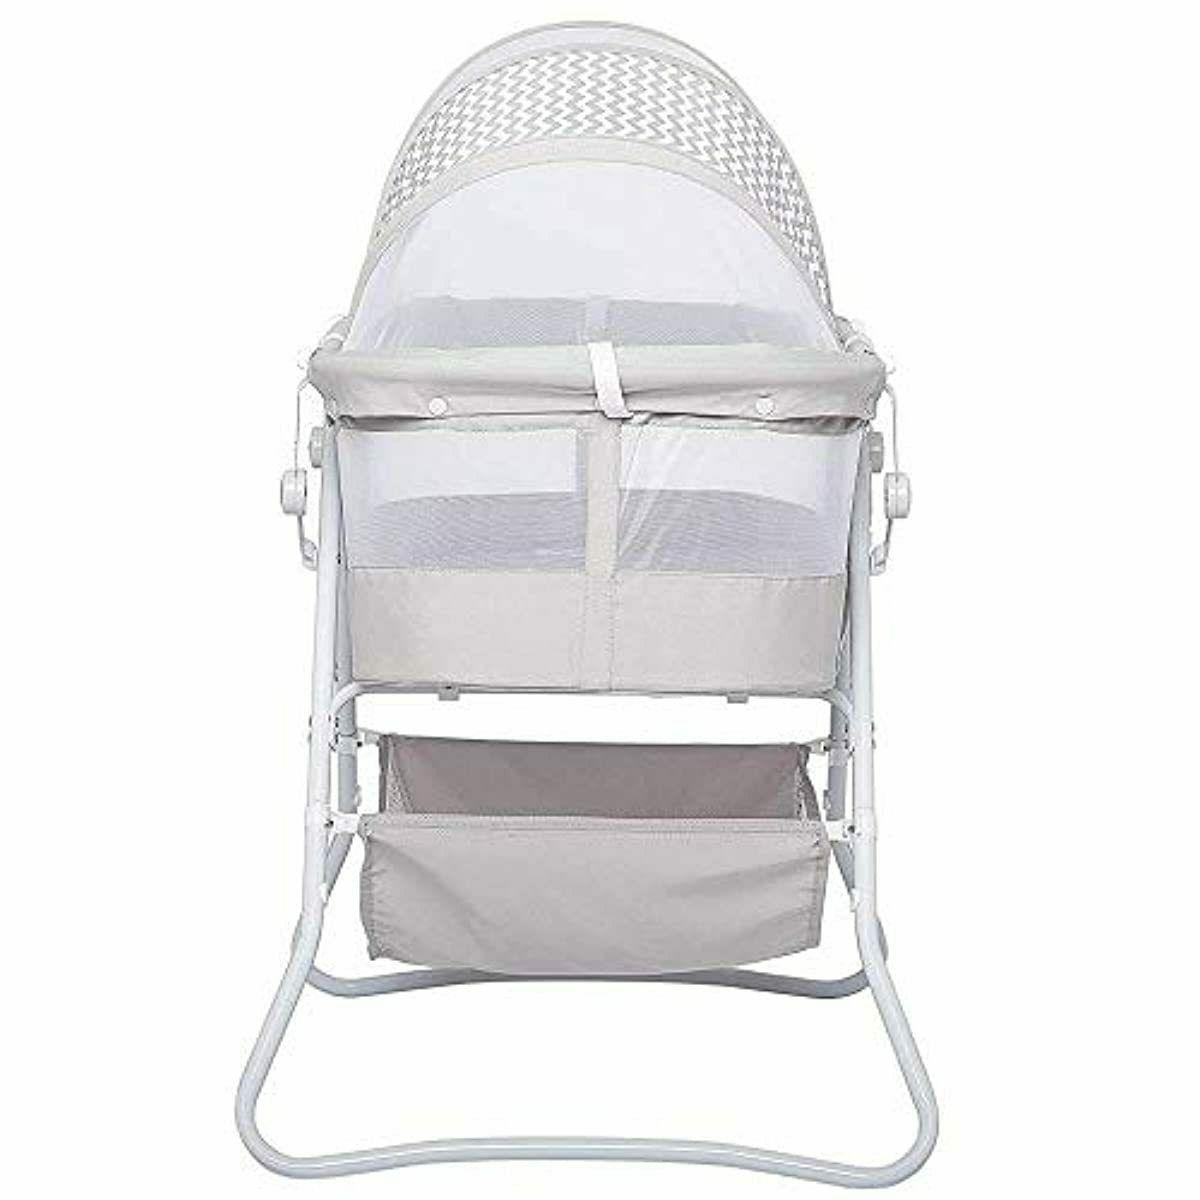 Dream Me Karley Bassinet,